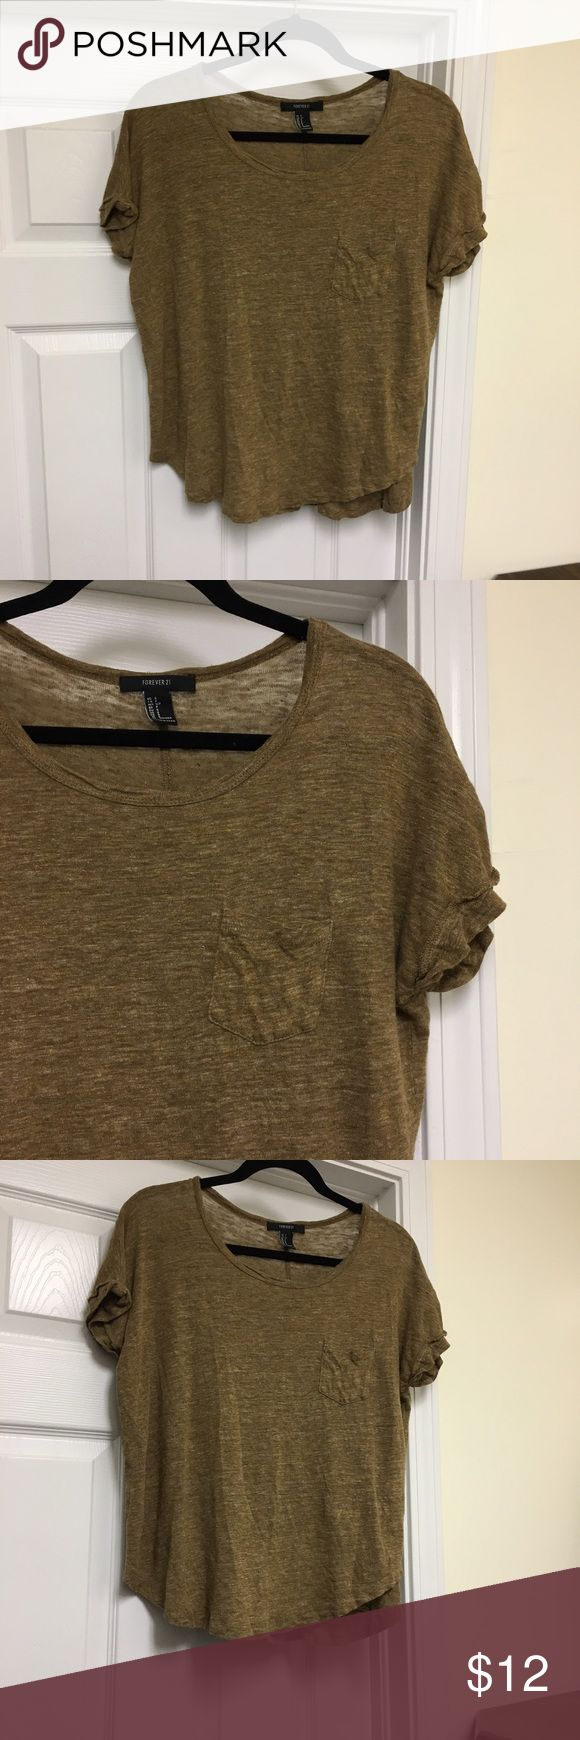 Rustic Brown Top Rustic looking brown short sleeve top from Forever 21. Size small. Fits loosely. Excellent condition Forever 21 Tops Tees - Short Sleeve